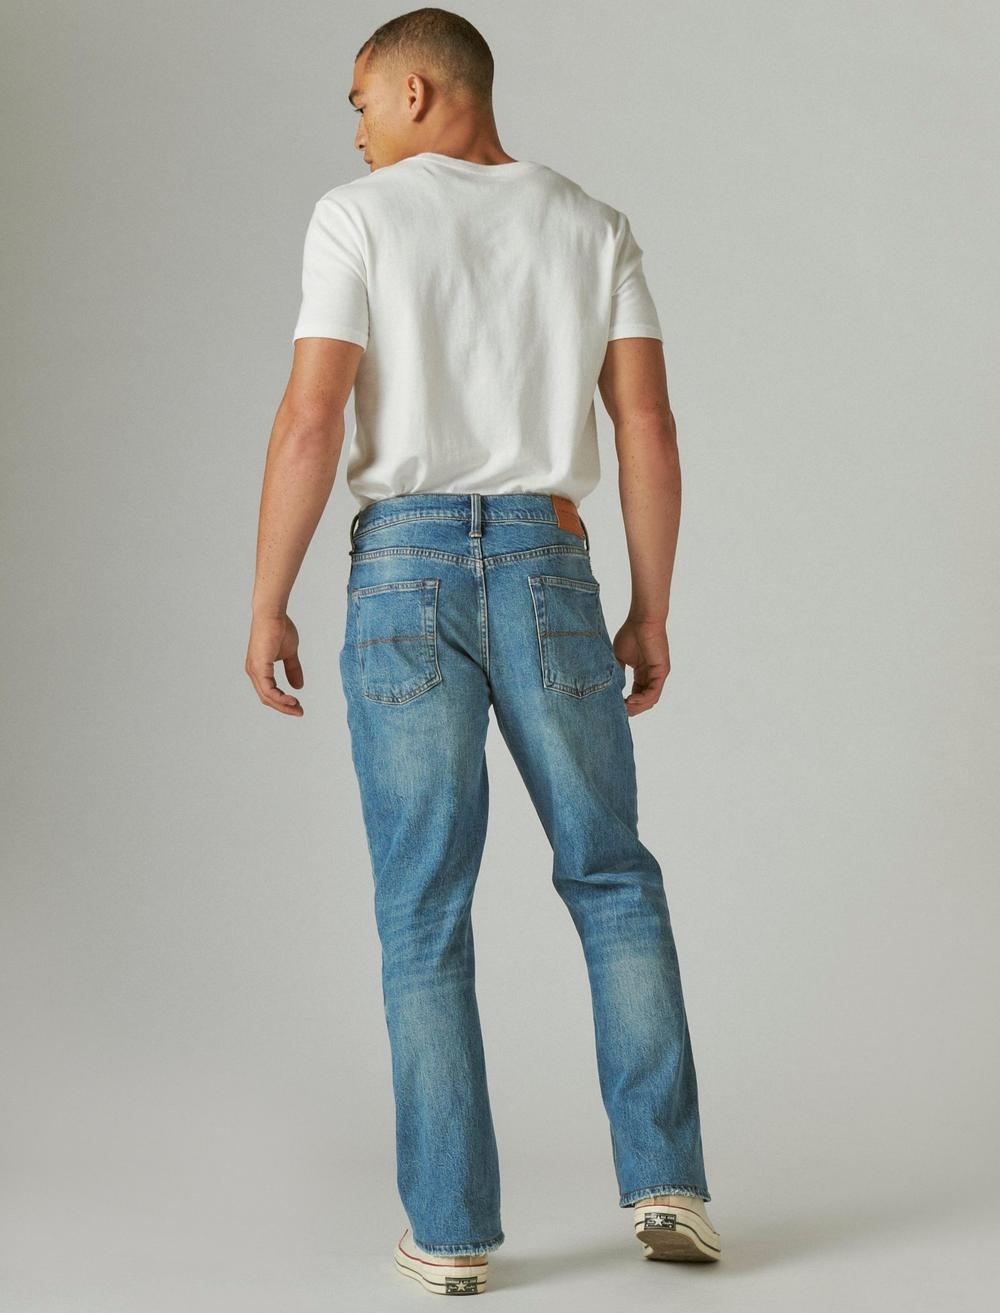 EASY RIDER BOOTCUT JEAN, image 3